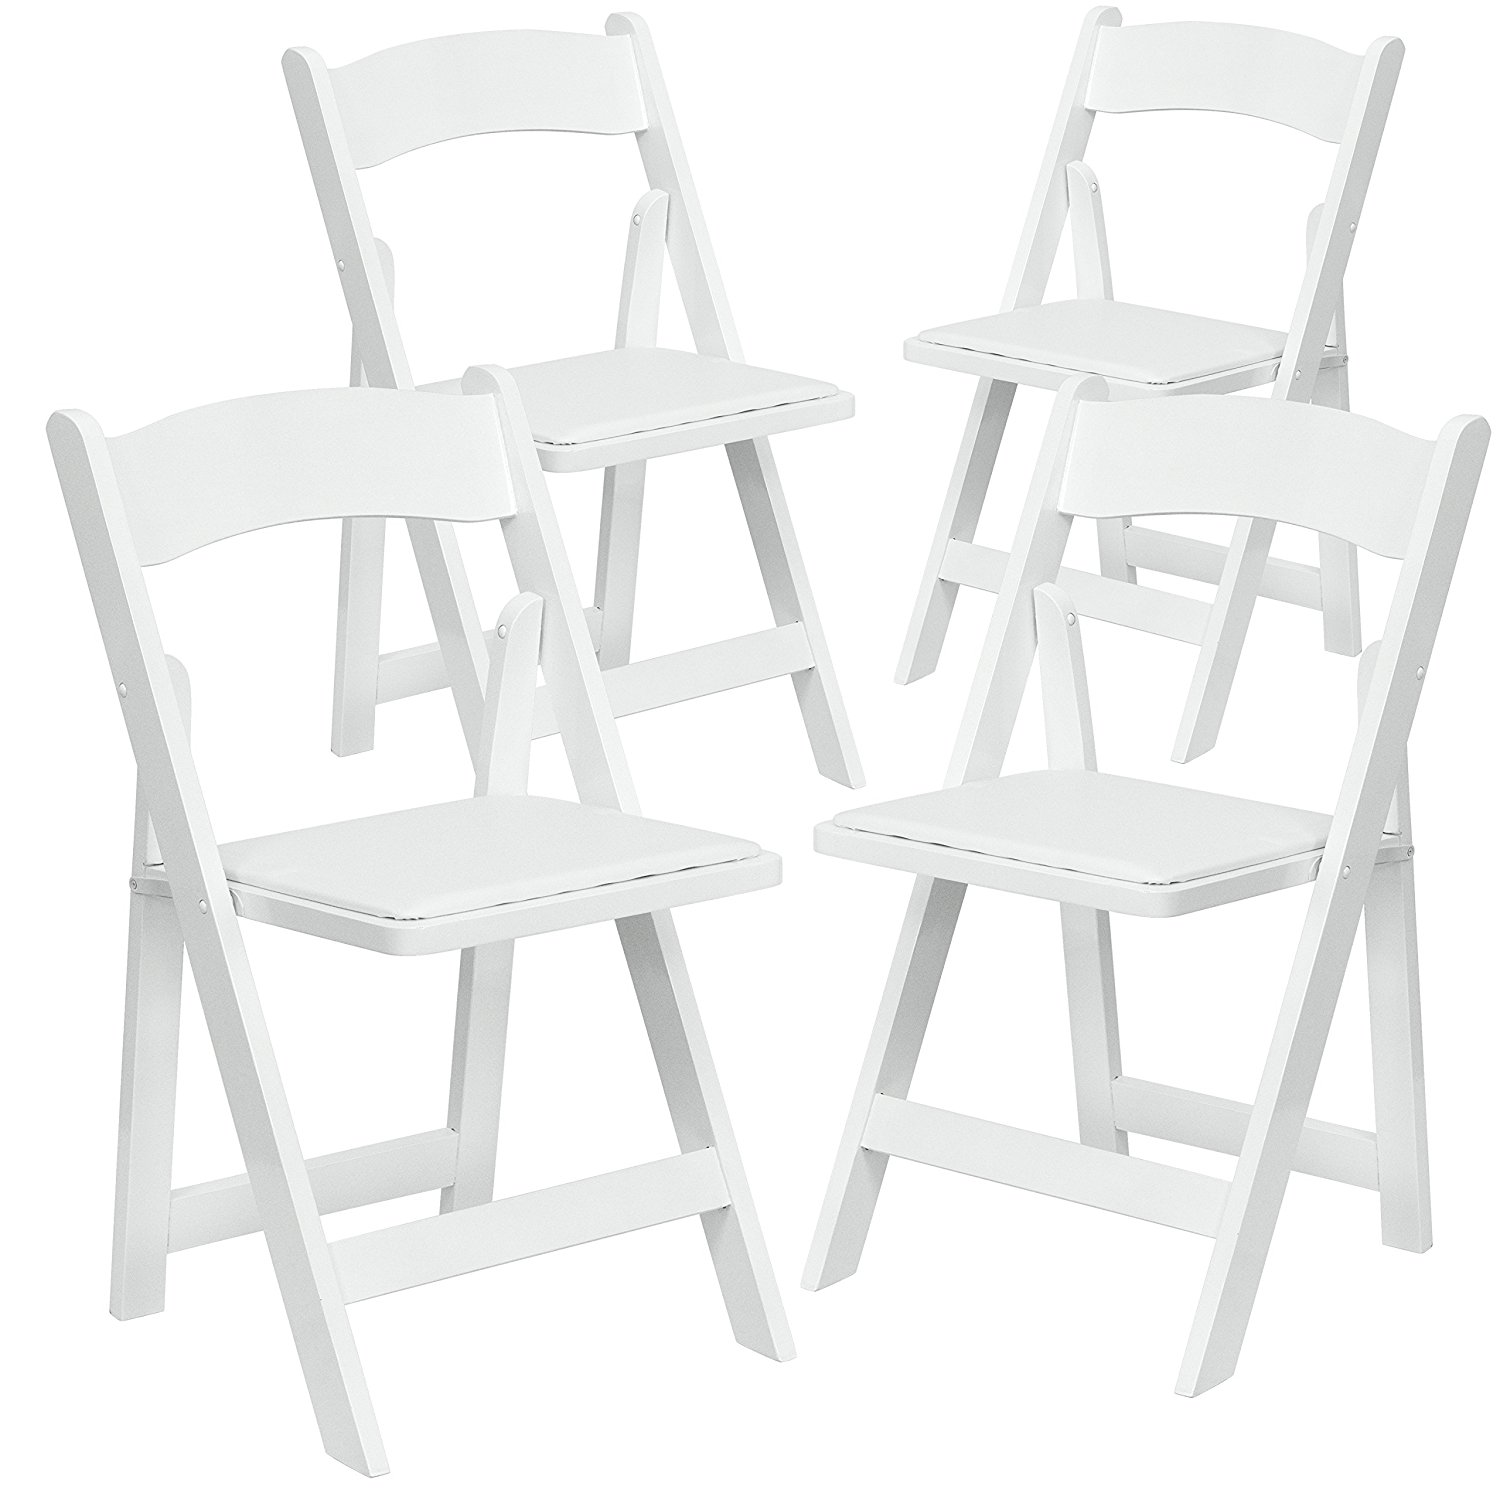 Chairs Folding A Folding Chair American Classic A White For Rent